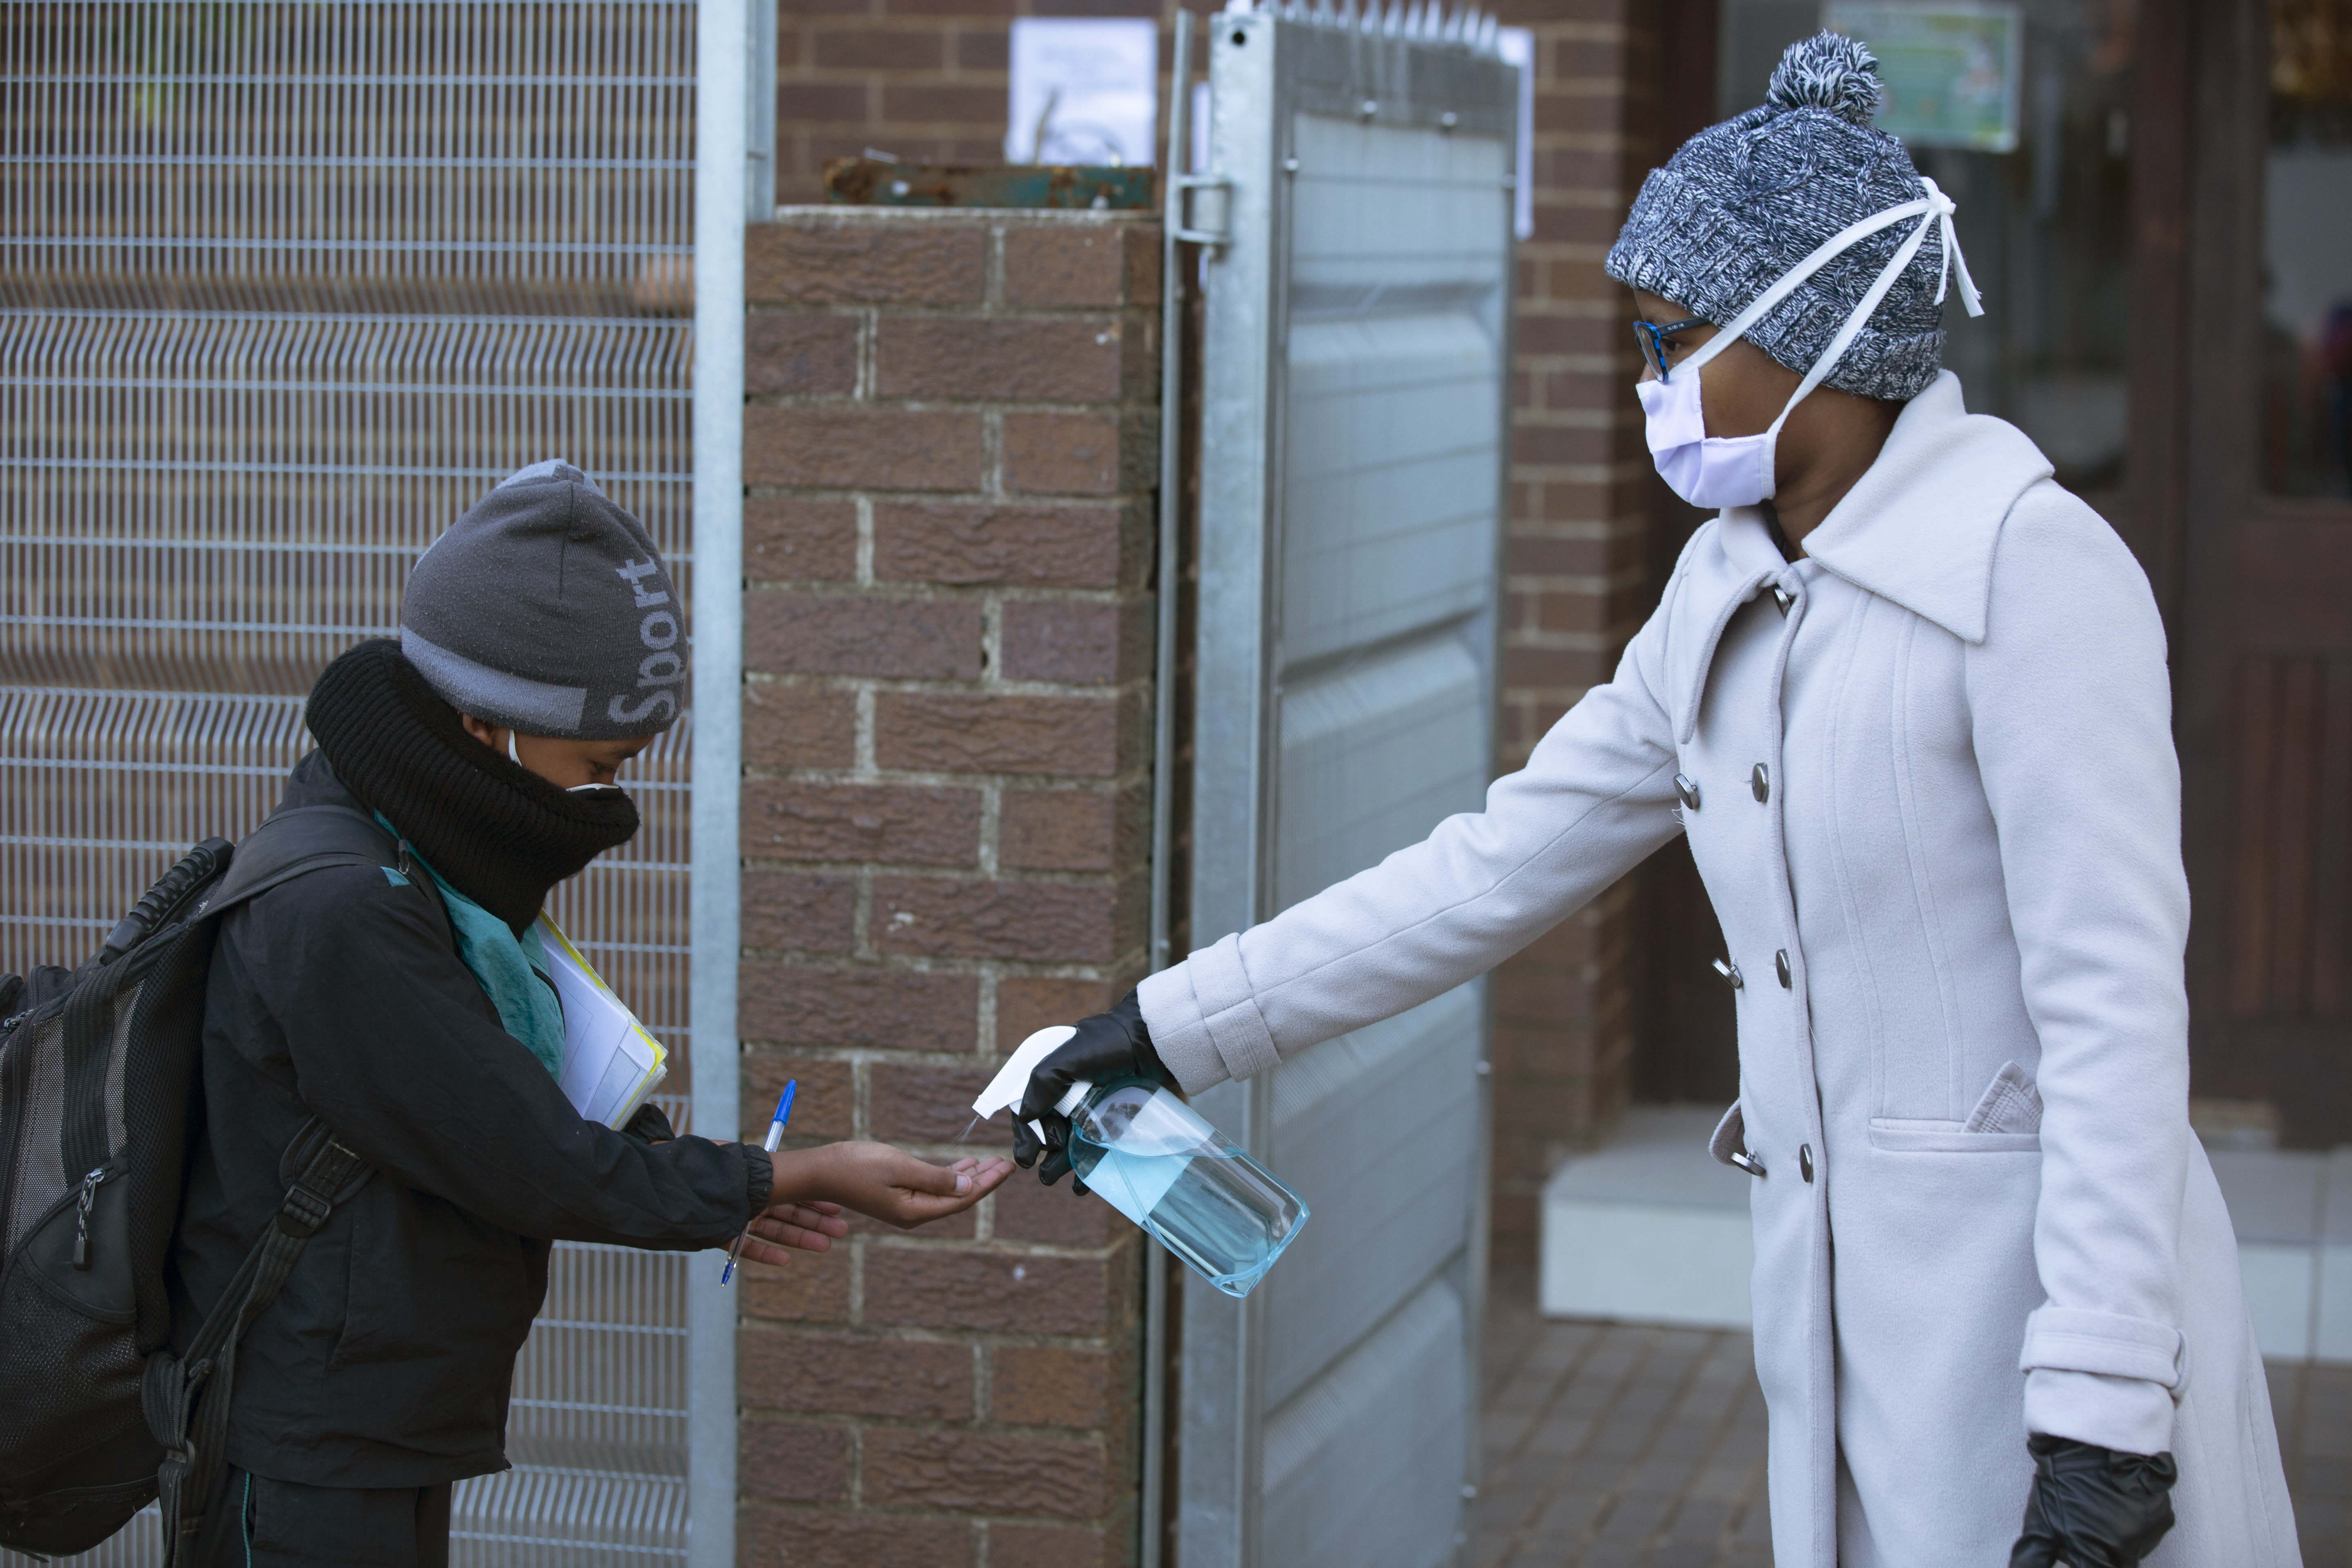 A pupil's hands are sanitised on returning to school in Johannesburg, Monday July 6, 2020, as more learners were permitted to return to class. Schools were shut down in March prior to a total country lockdown in a bid to prevent the spread of coronavirus and are now slowly being re-opened. (AP Photo/Denis Farrell)